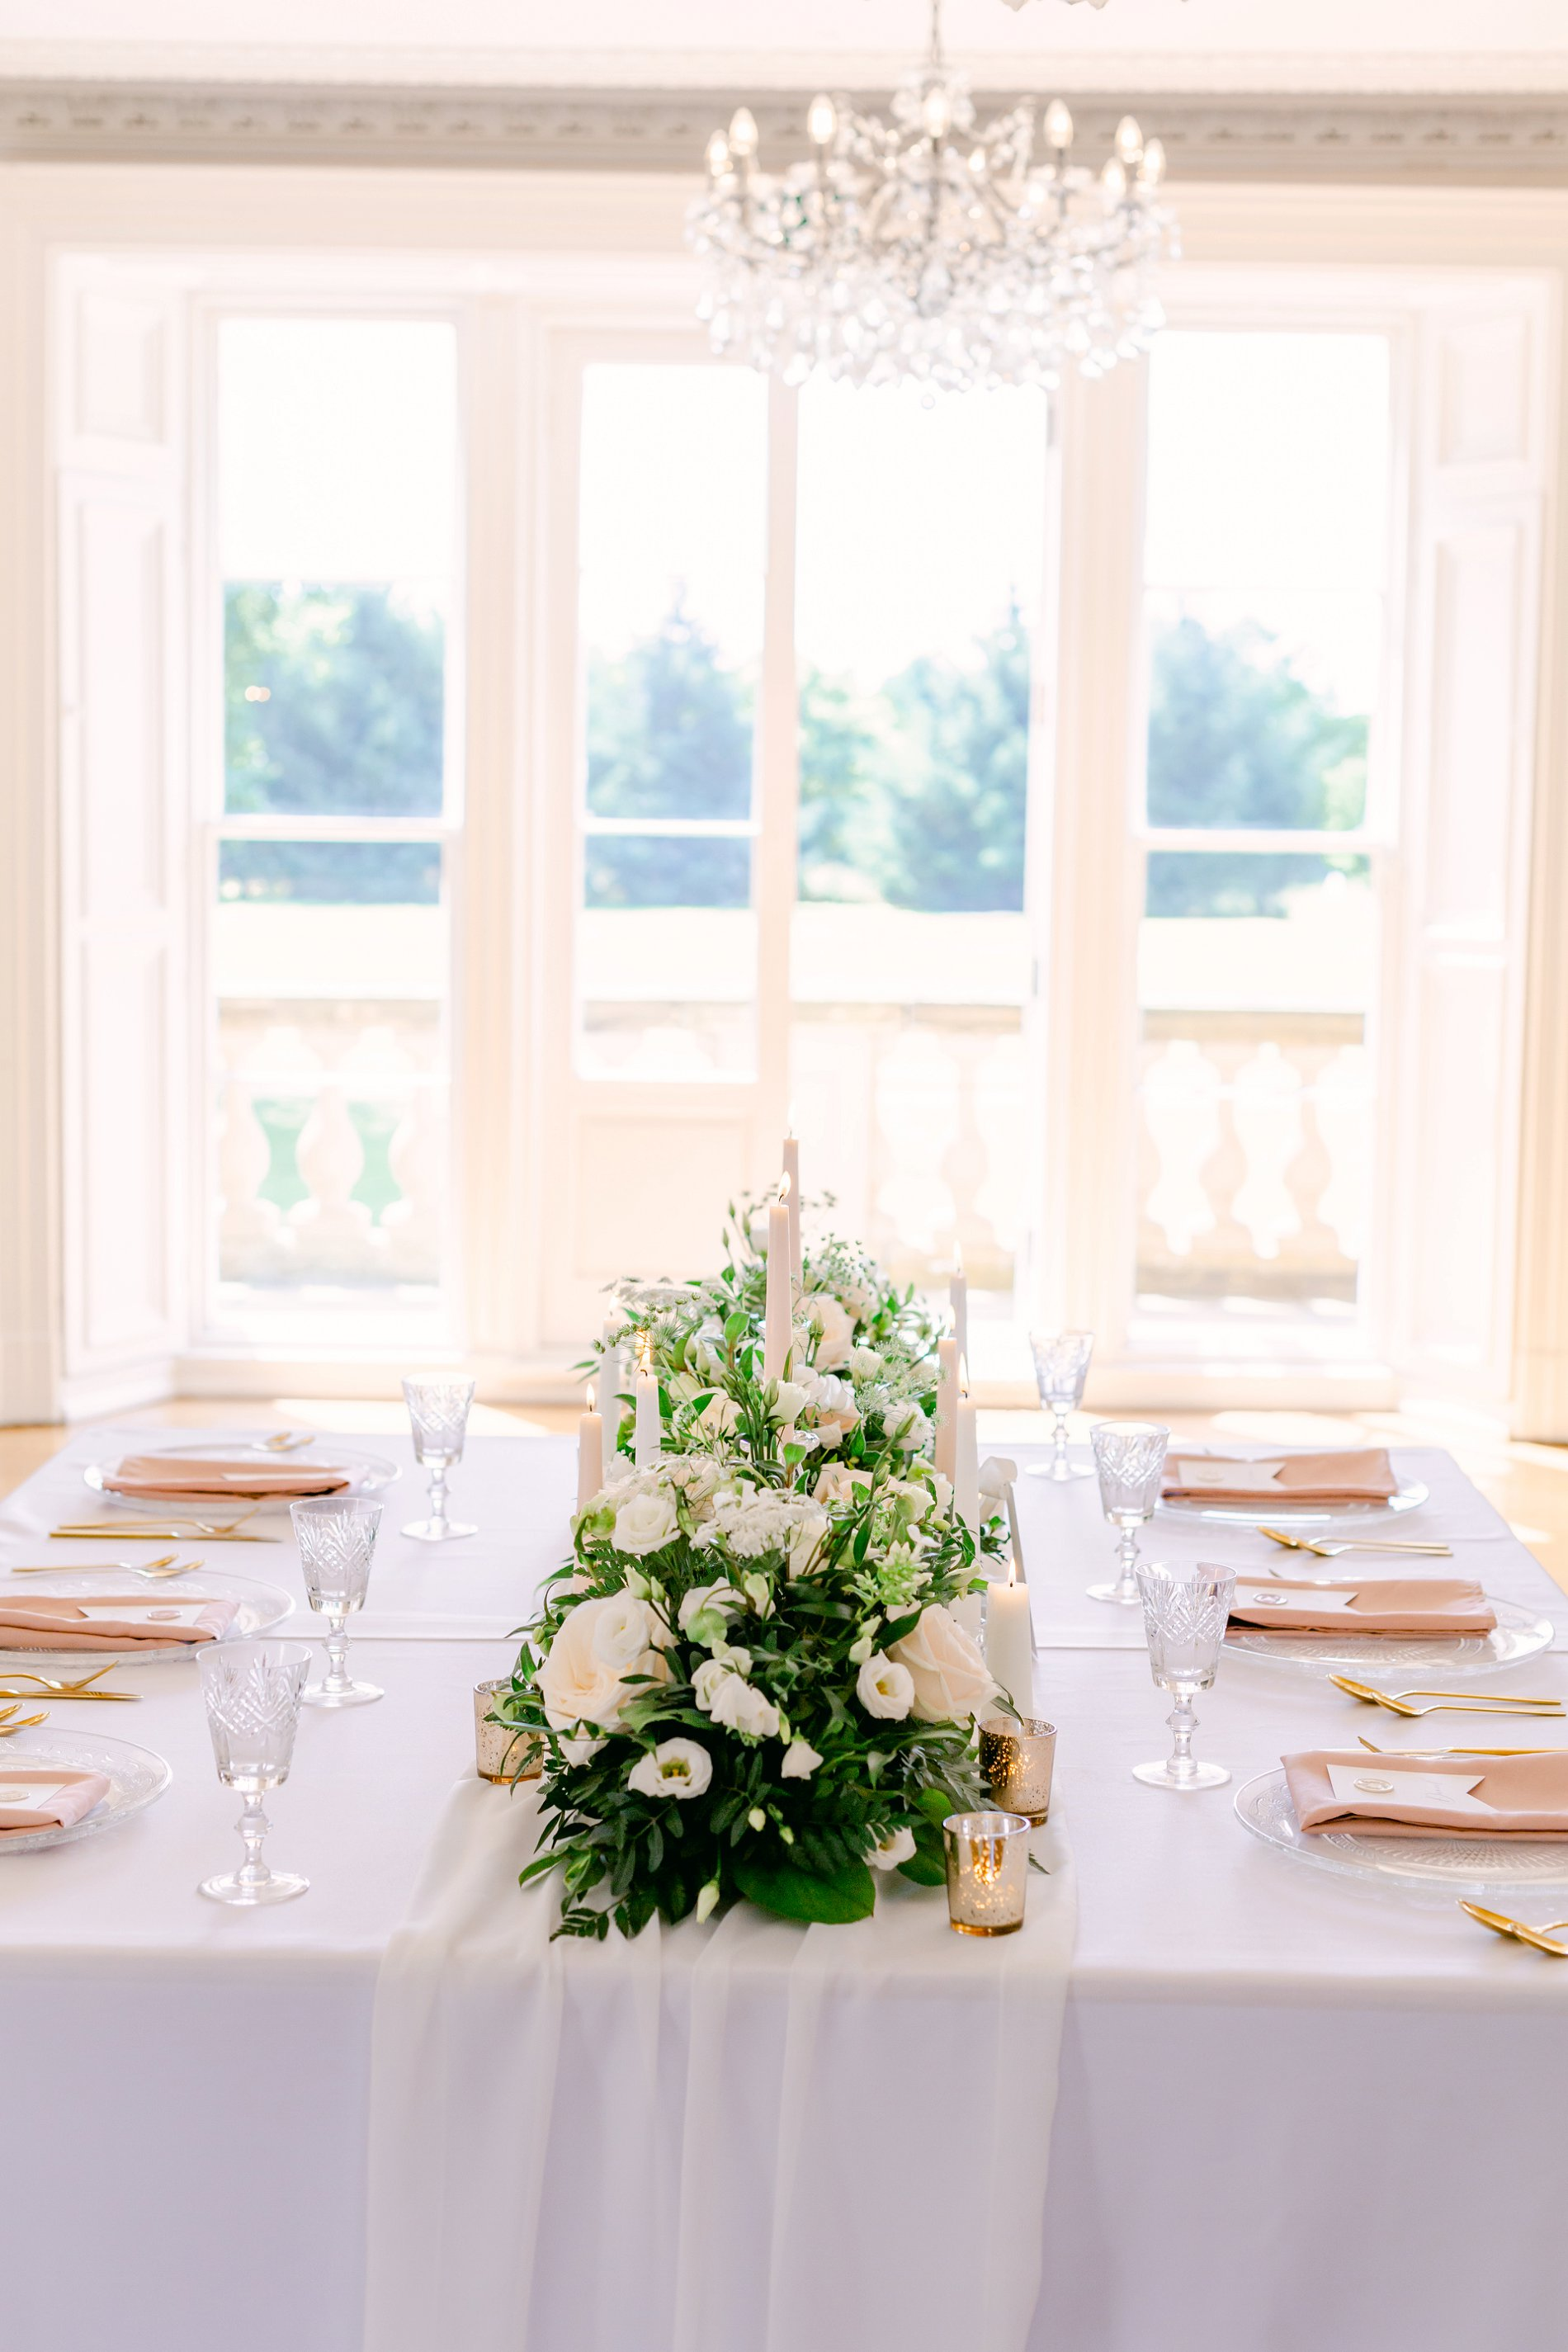 An Elegant UNVEILED Network wedding shoot at Hirst Priory (c) Ailsa Reeve Photography (20)